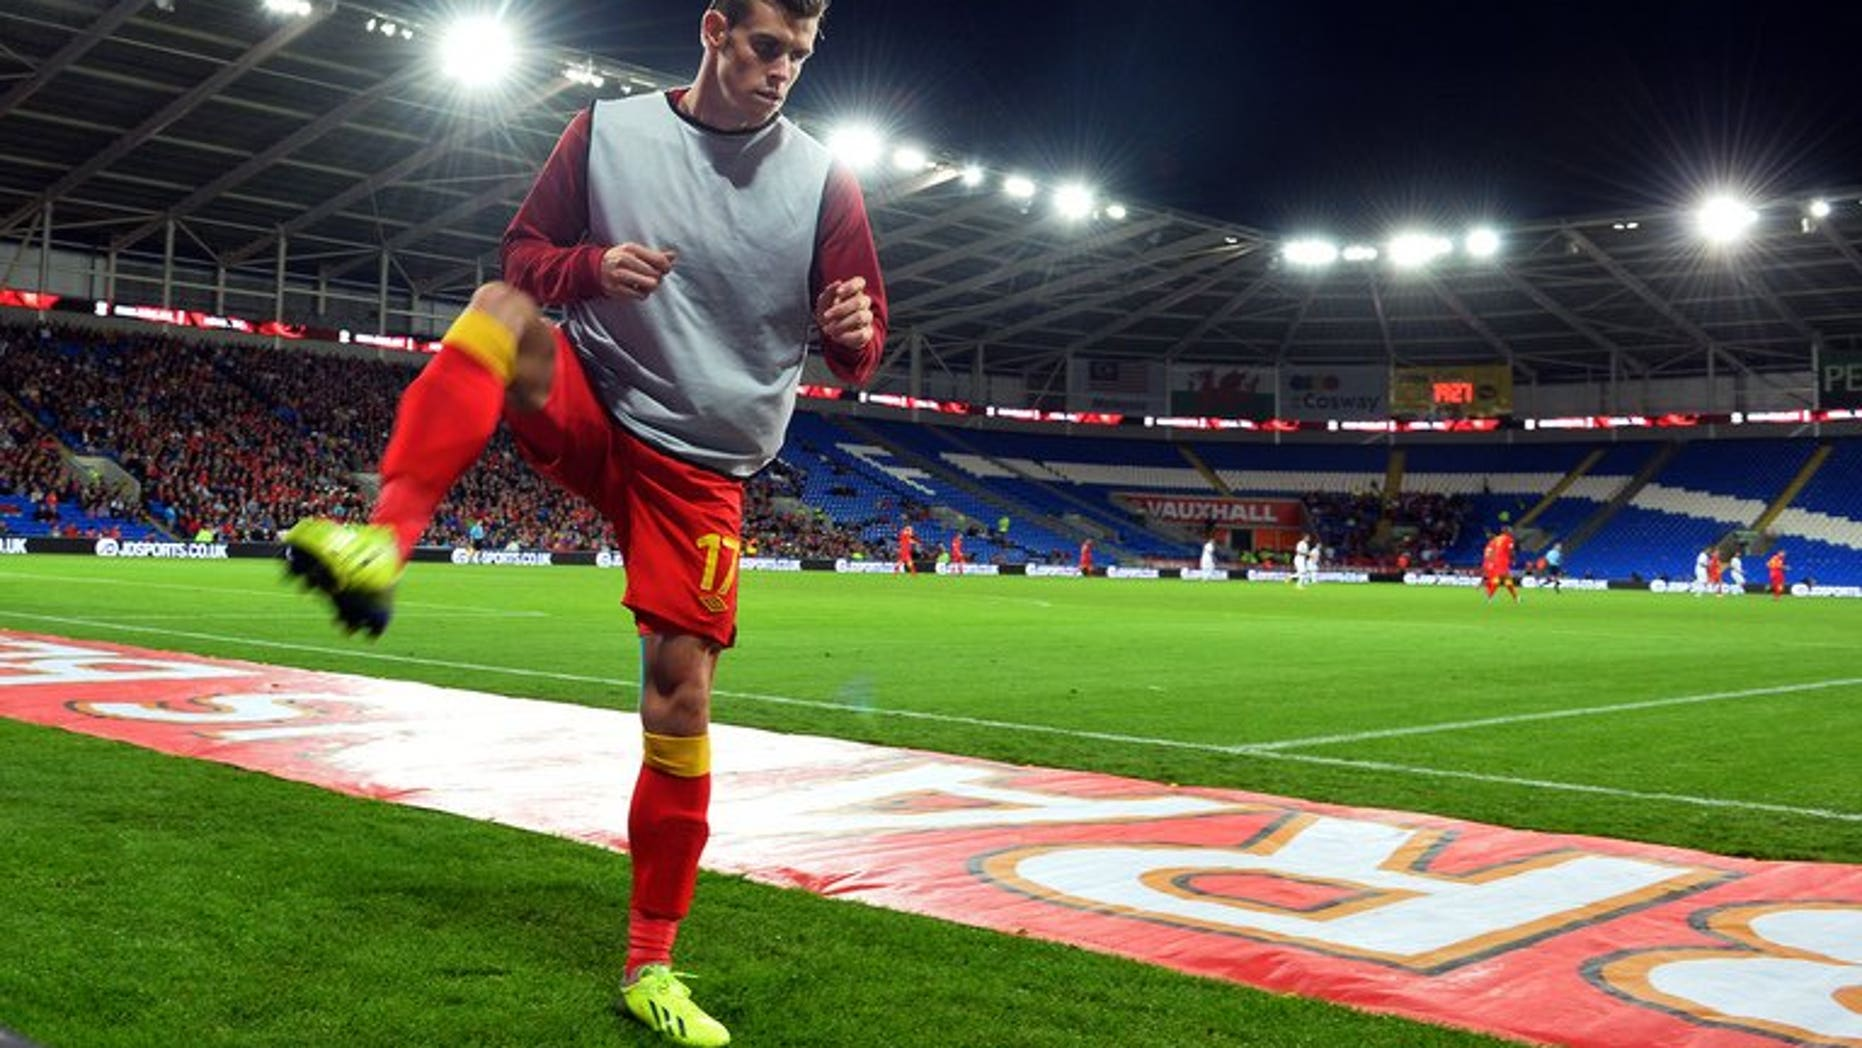 """Wales midfielder Gareth Bale warms up during the World Cup 2014 European Zone group A qualifying football match between Wales and Serbia at Cardiff City Stadium on September 10, 2013. Gareth Bale said on Thursday he was """"a bit behind"""" his new Real Madrid team-mates in terms of fitness, after a close season hampered by injury."""